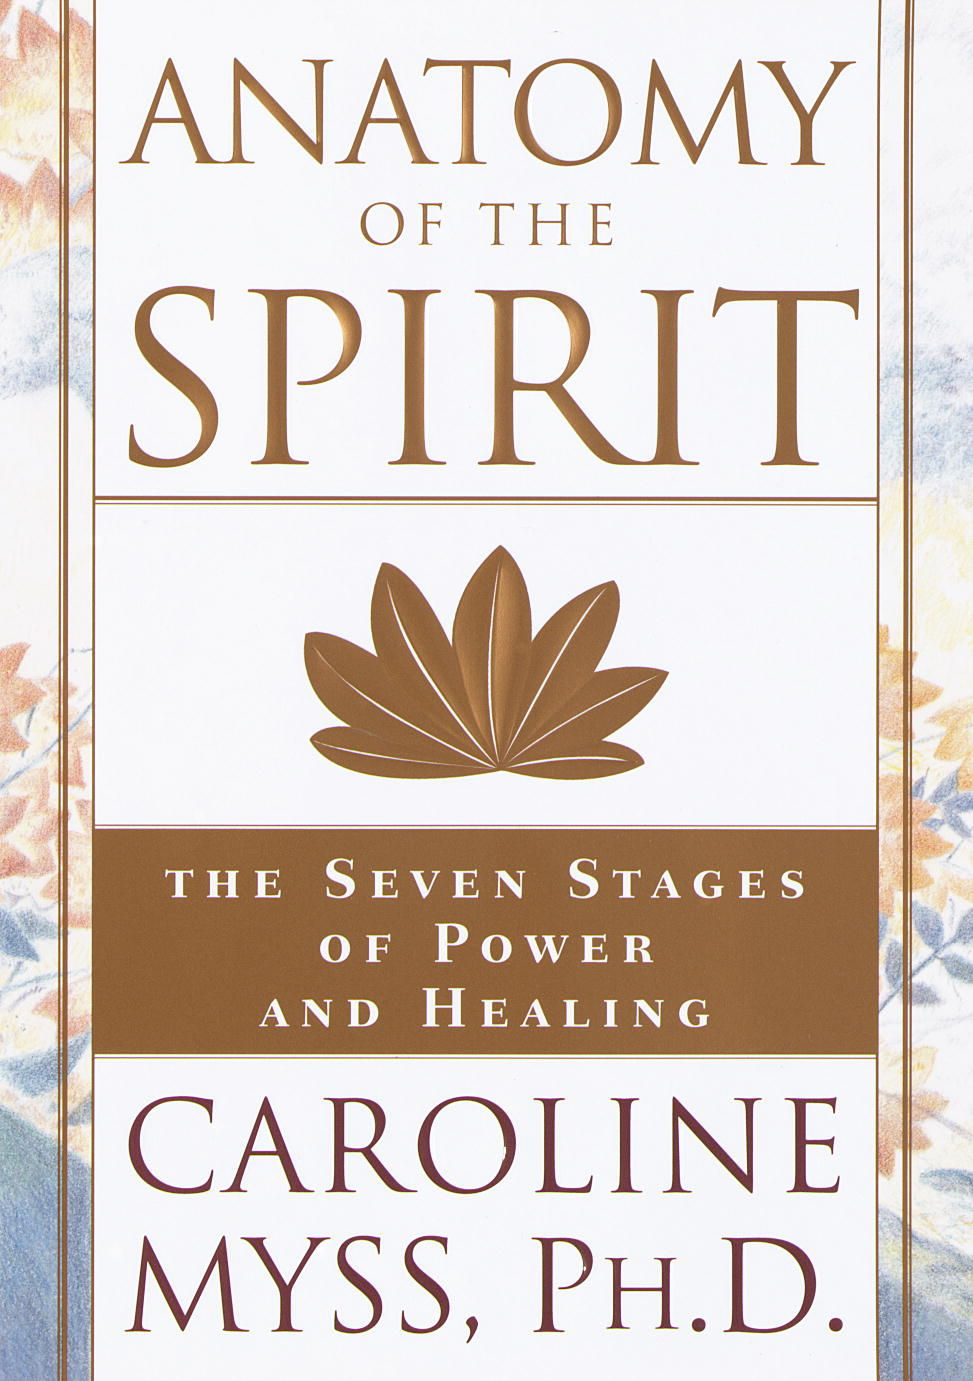 9780517703915 Anatomy Of The Spirit The Seven Stages Of Power And